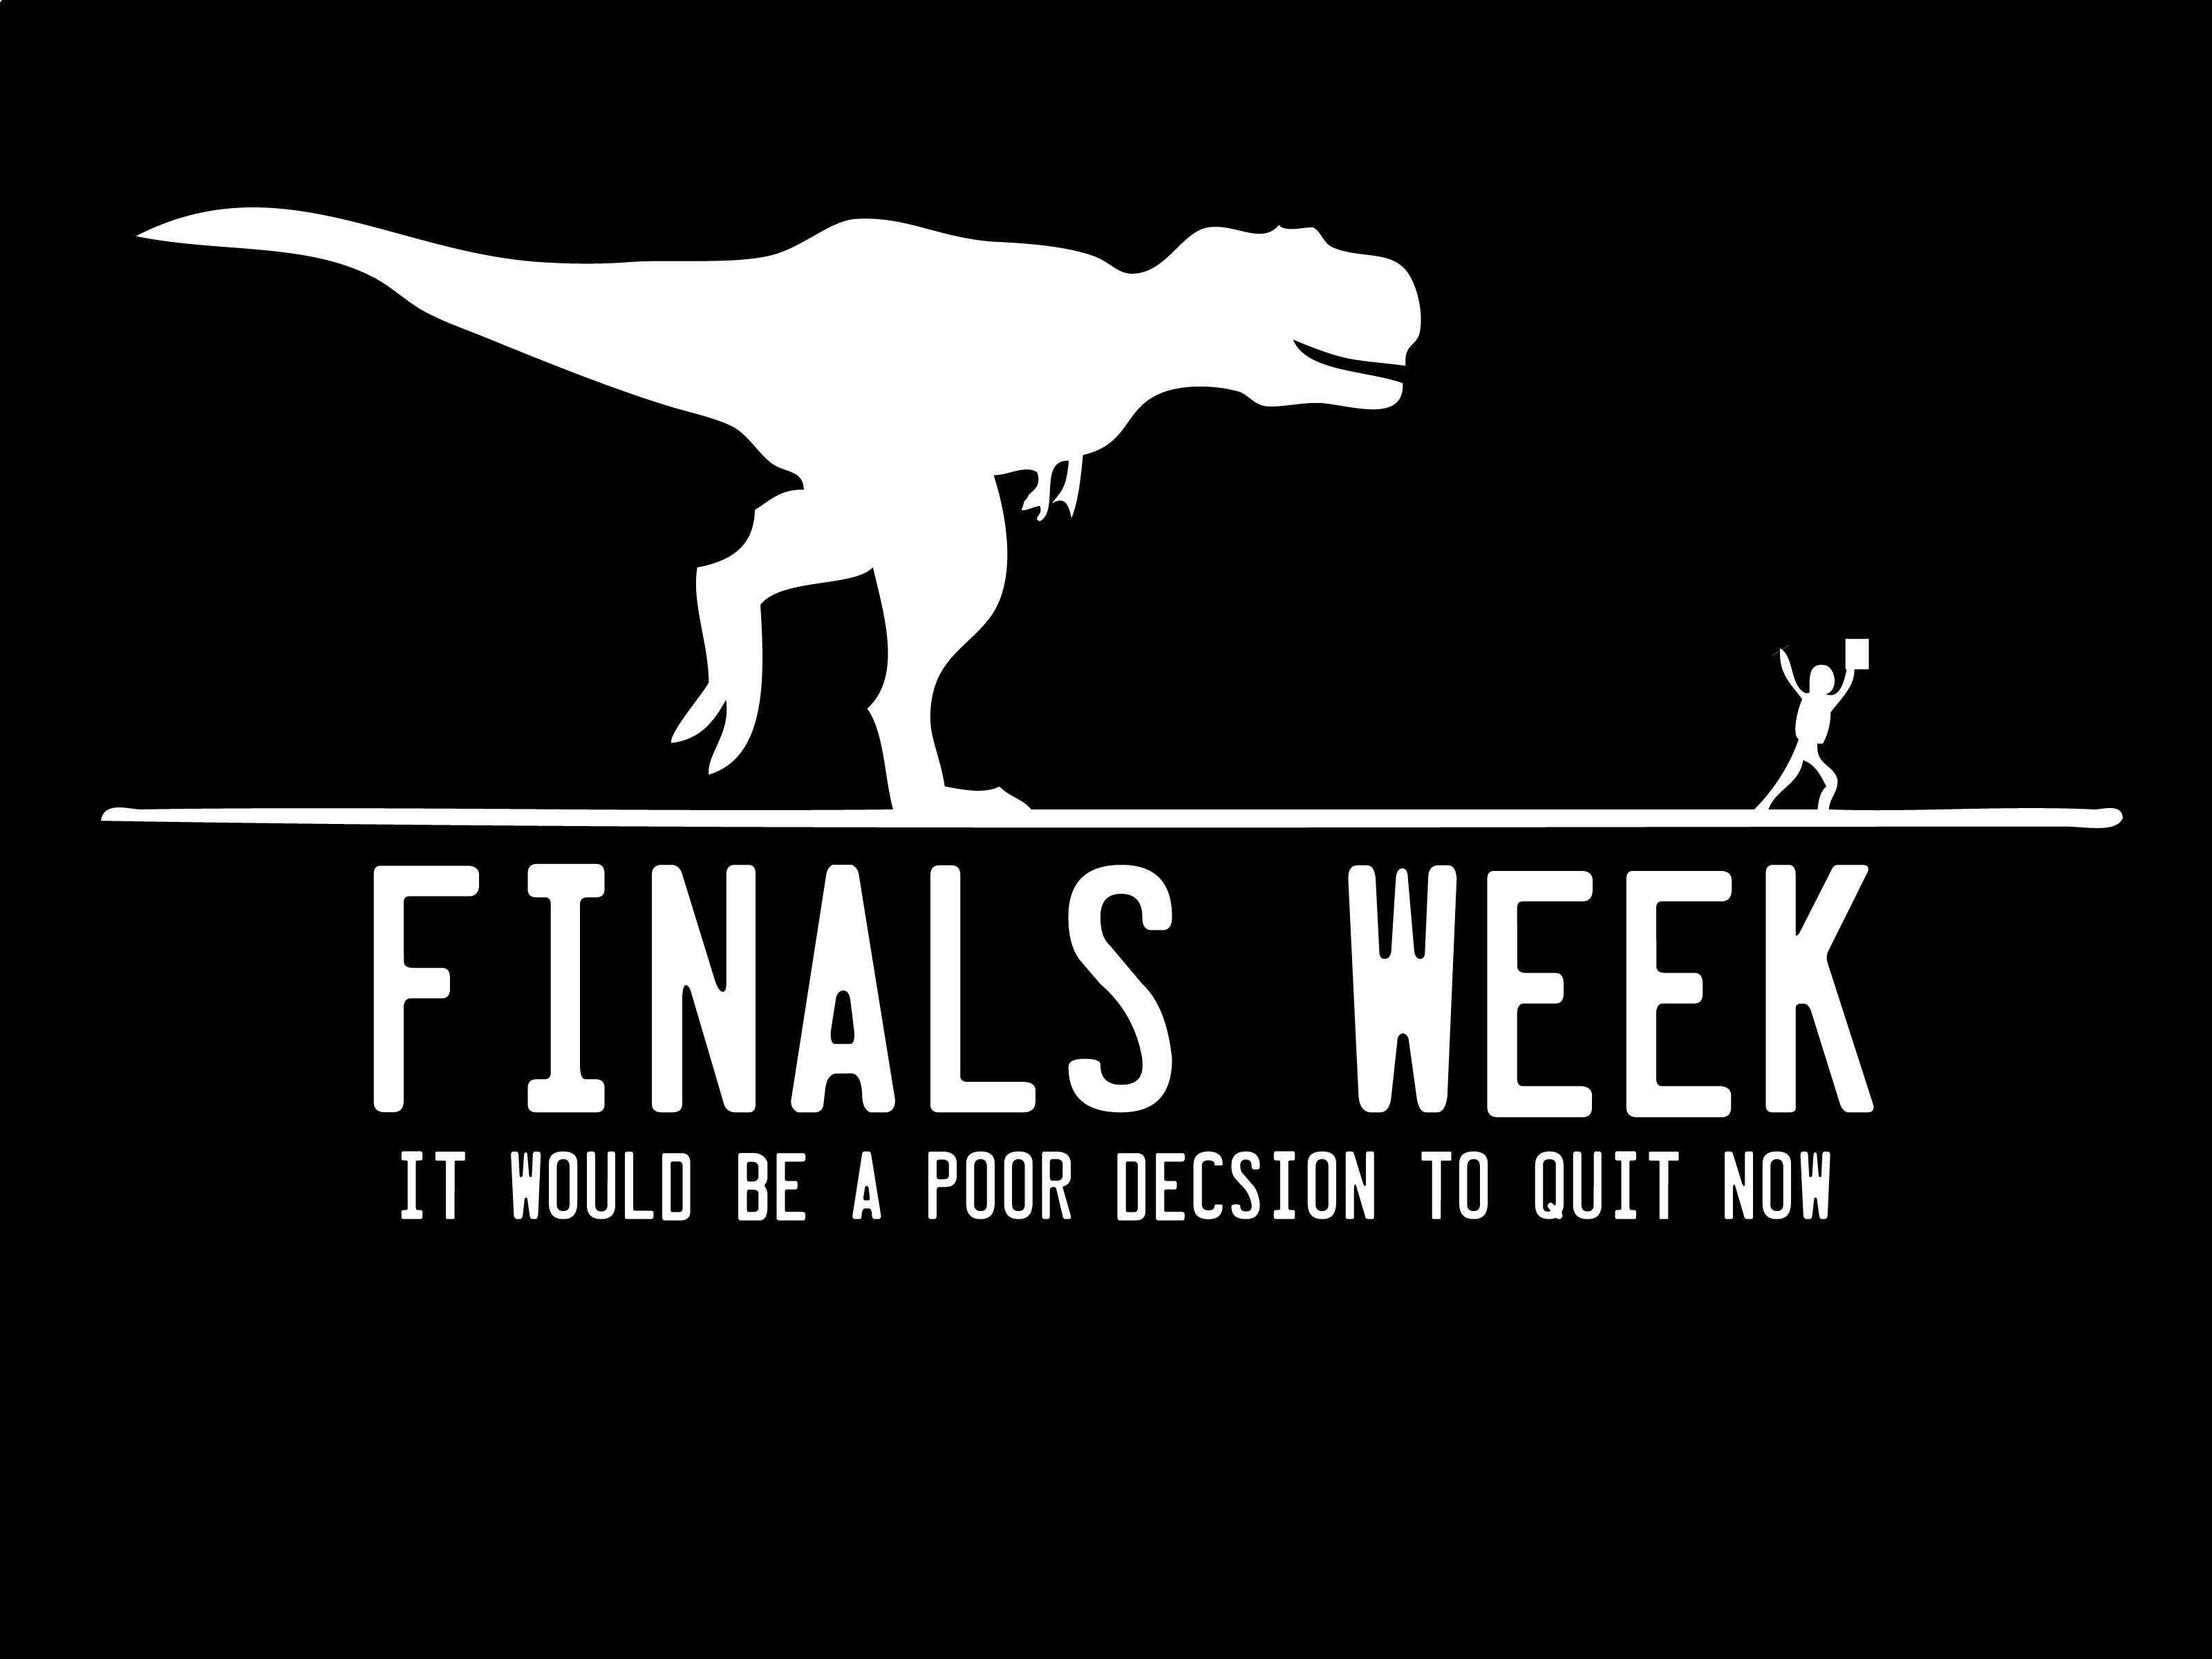 the finals week motivation and advice we all need